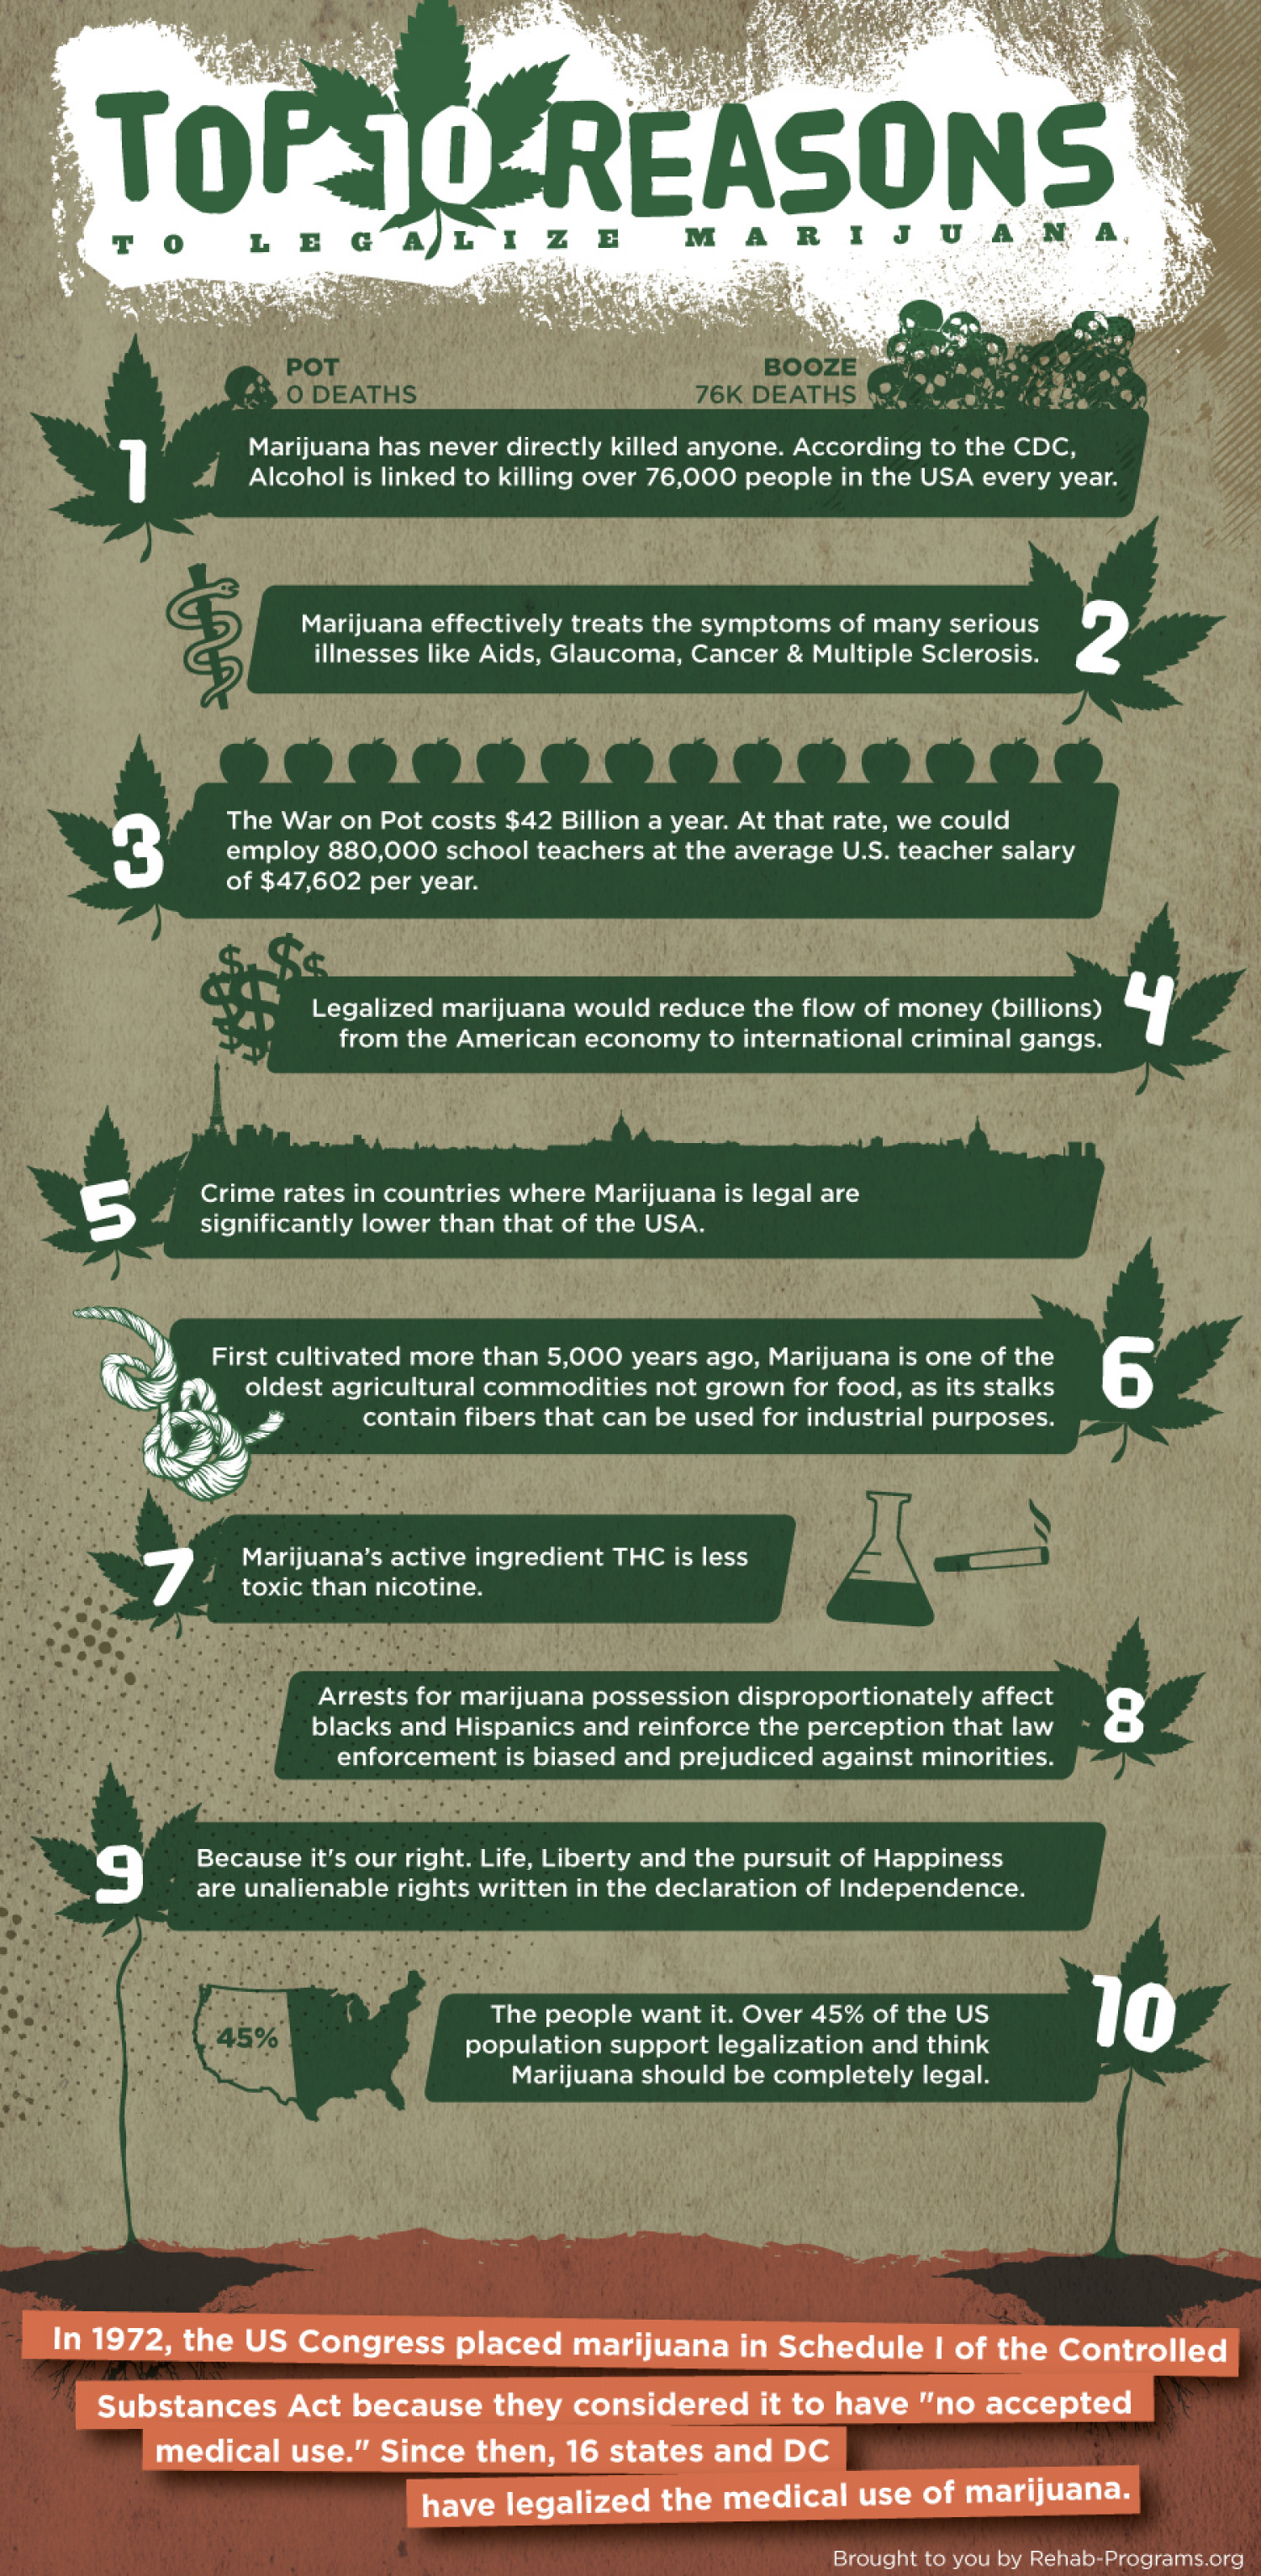 Top 10 Reasons To Legalize Marijuana  Infographic